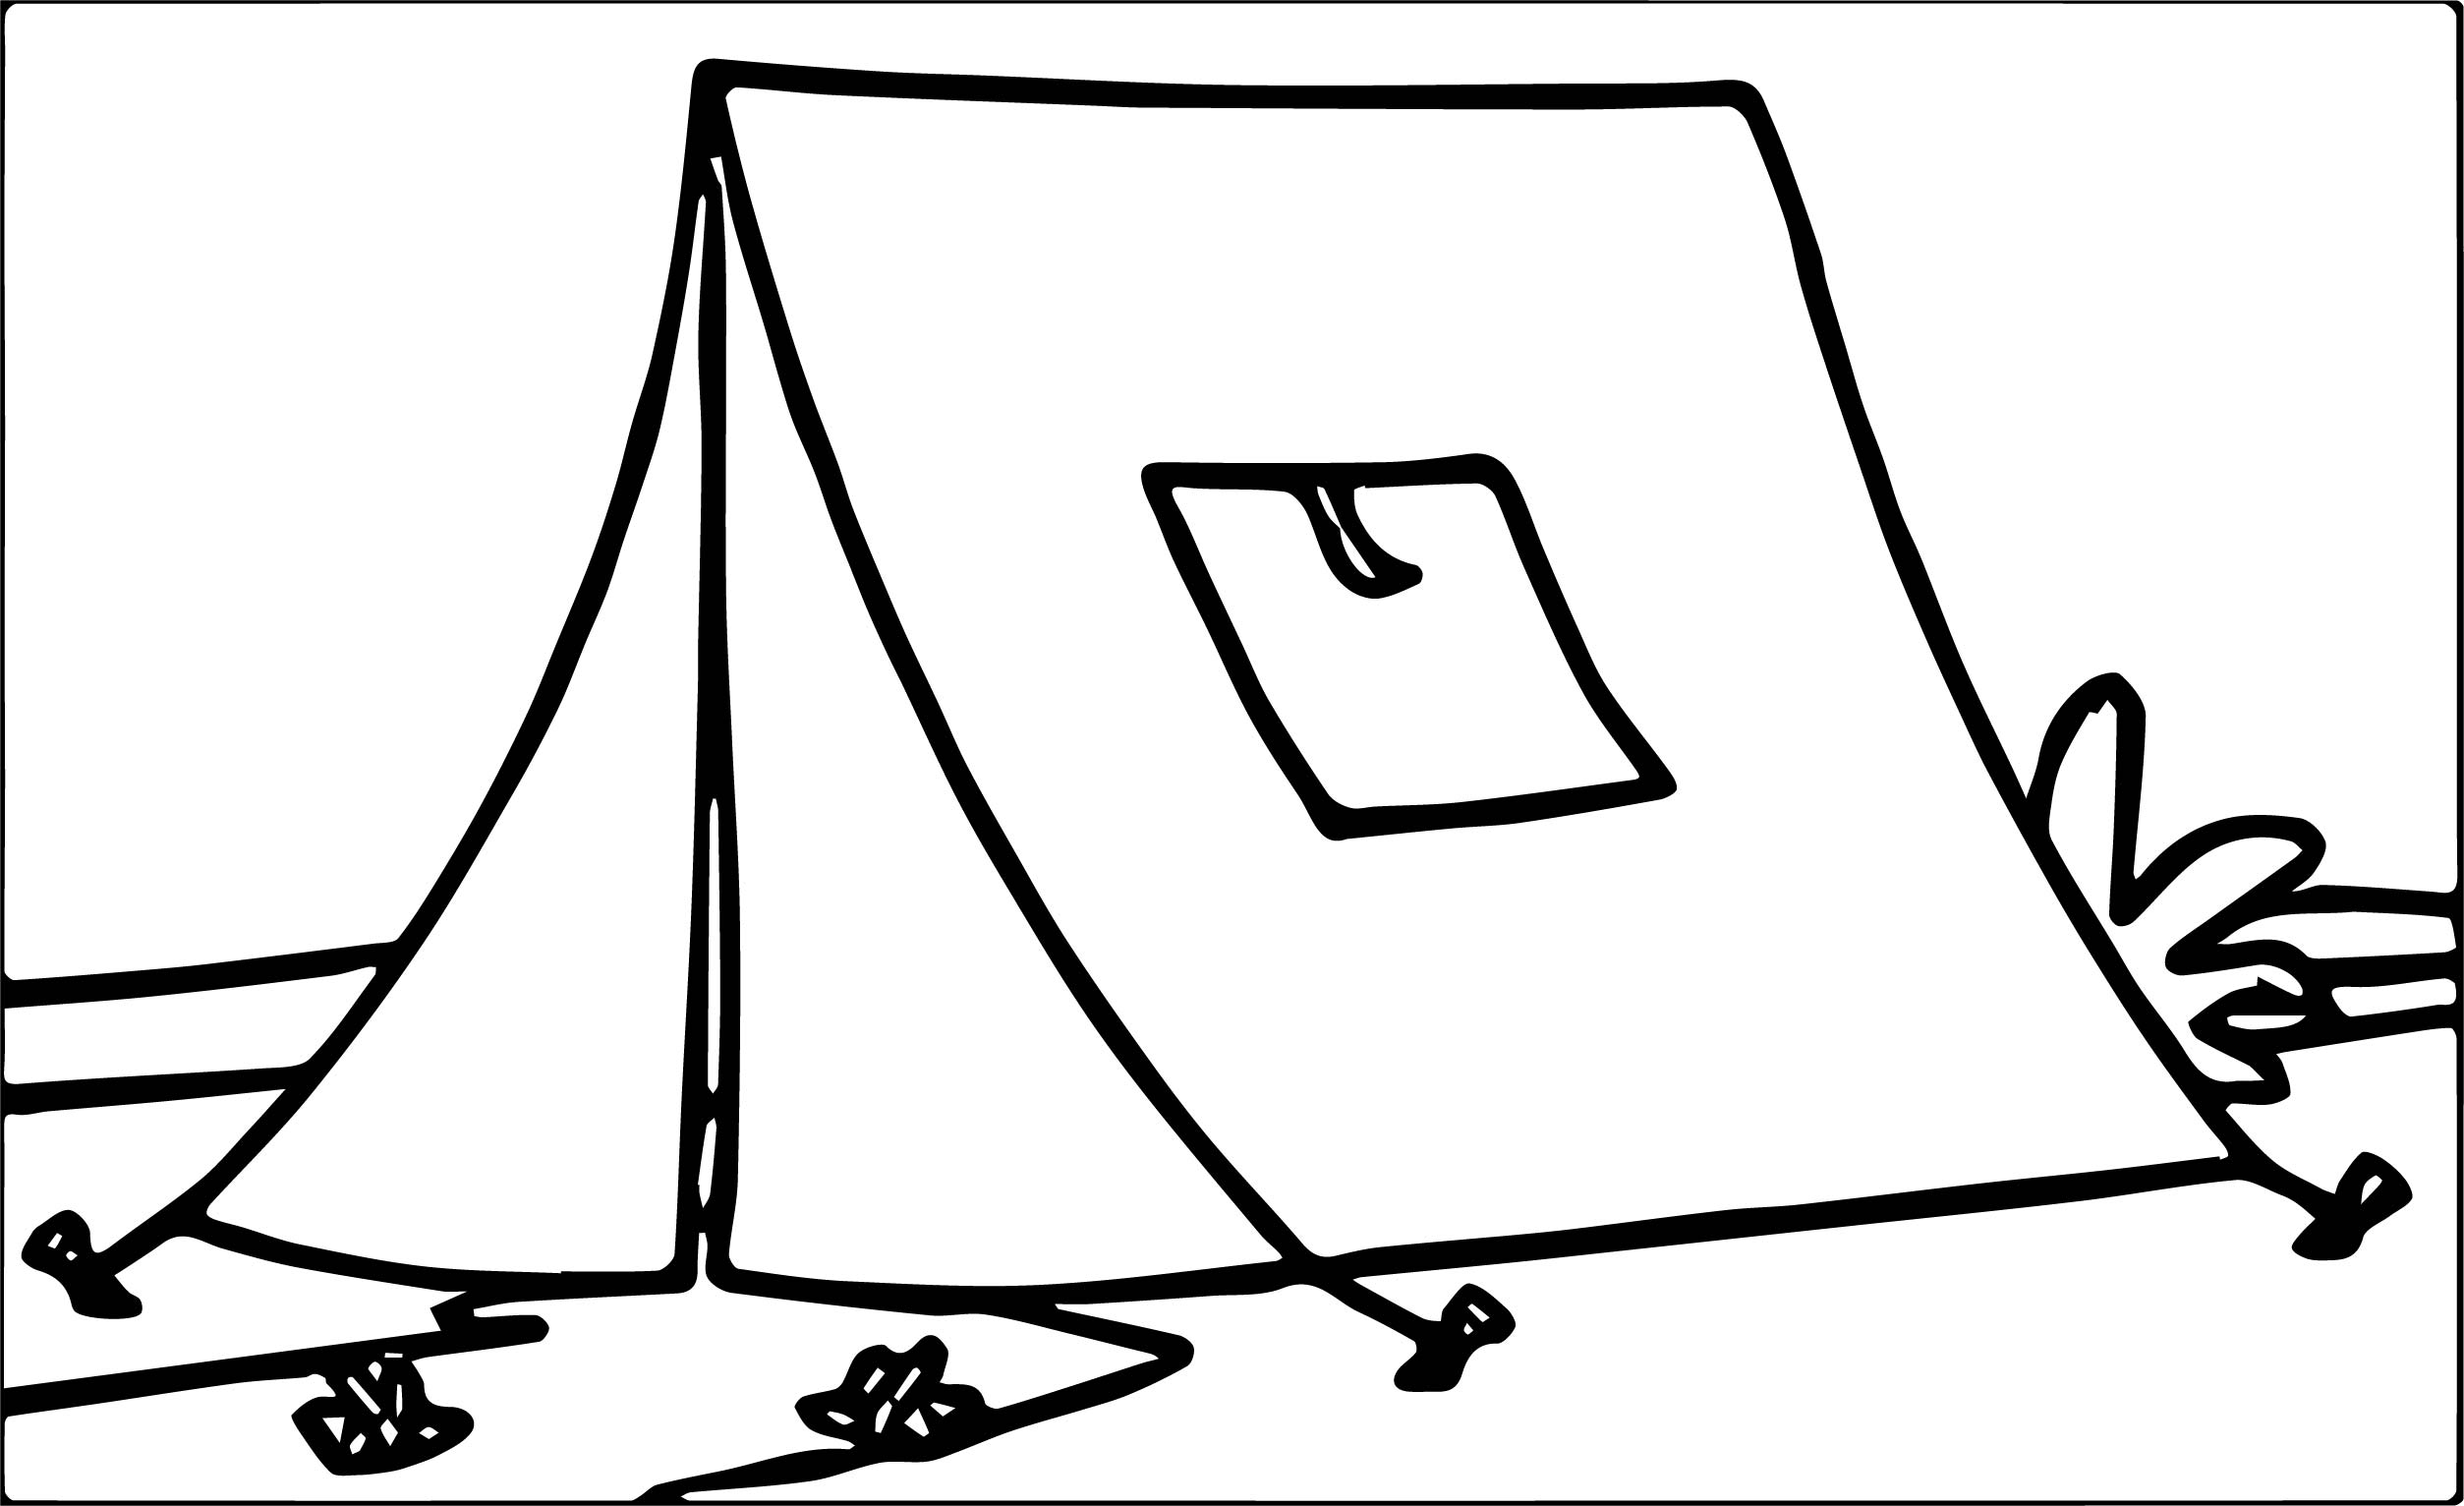 Tn Completely Constructed Yellow Tent At Camp Camping